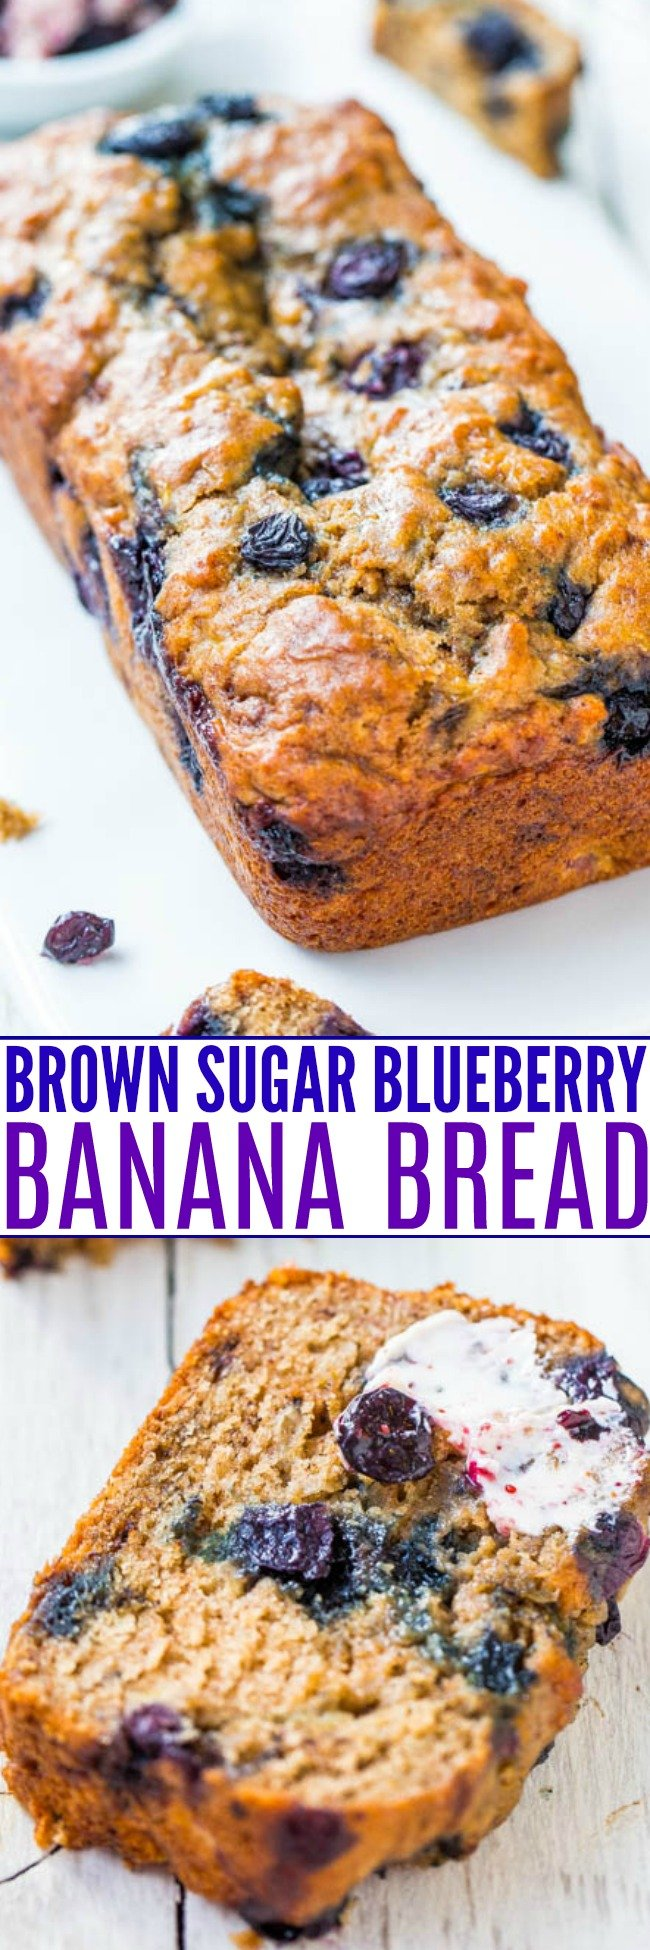 Brown Sugar Blueberry Banana Bread — Super moist blueberry banana bread made with Greek yogurt and dark brown sugar. Smear some homemade blueberry butter onto a slice of this blueberry brown sugar banana bread and prepare to fall in love!